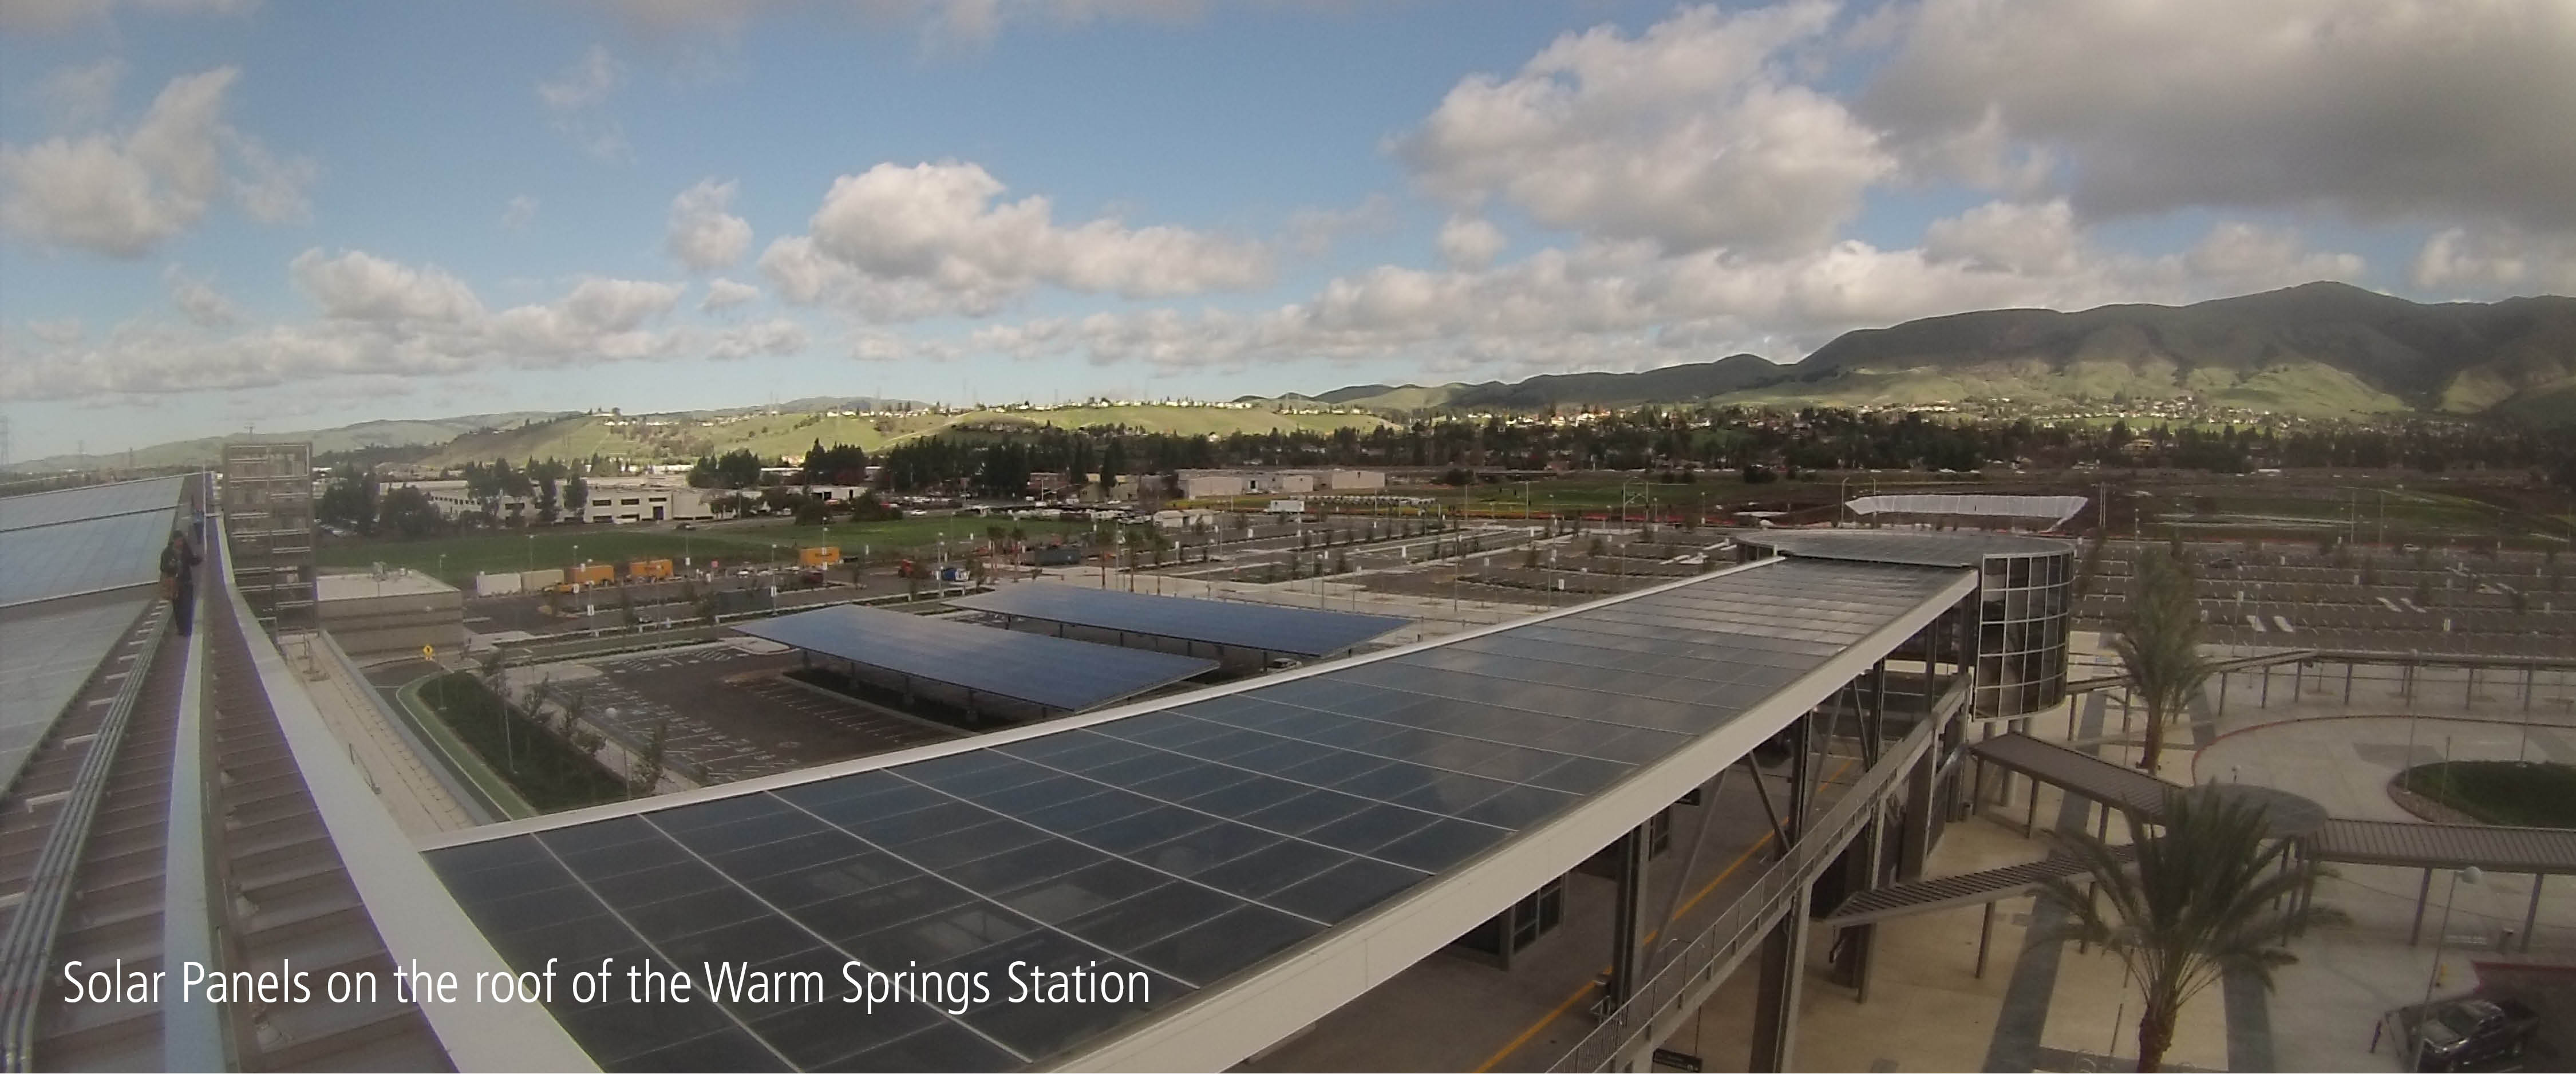 Warm Springs rooftop solar